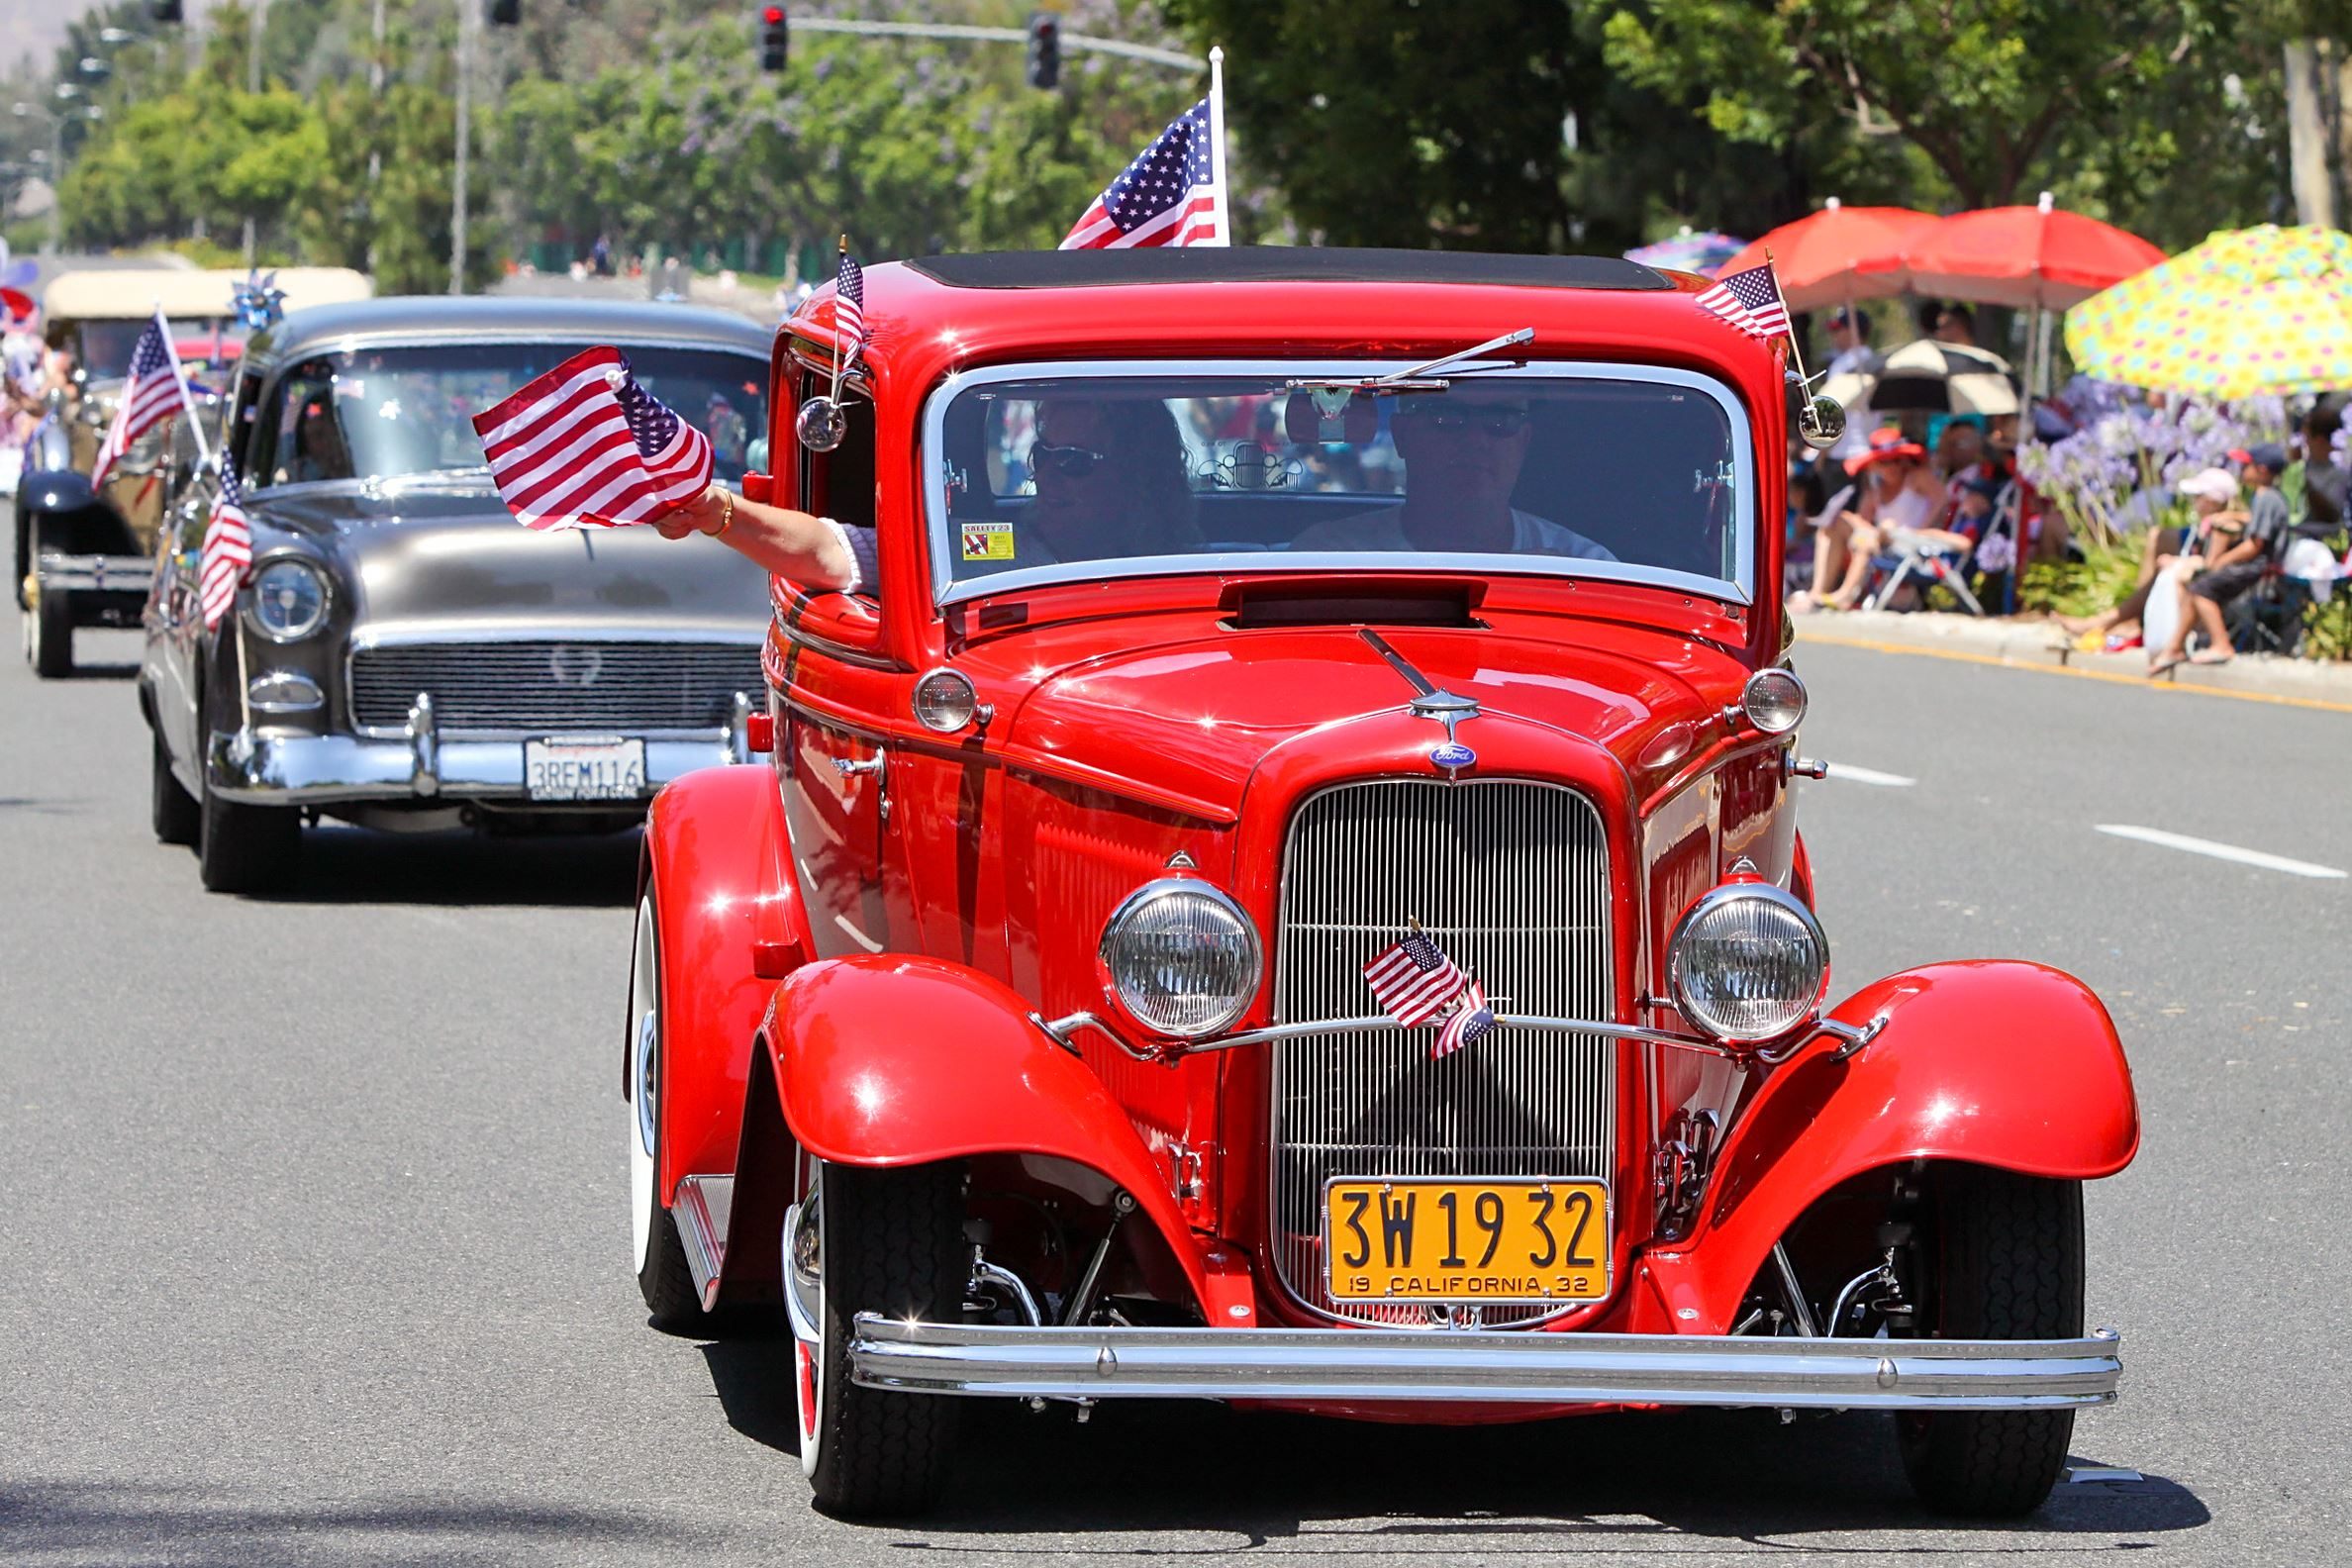 4TH OF JULY PARADE 52